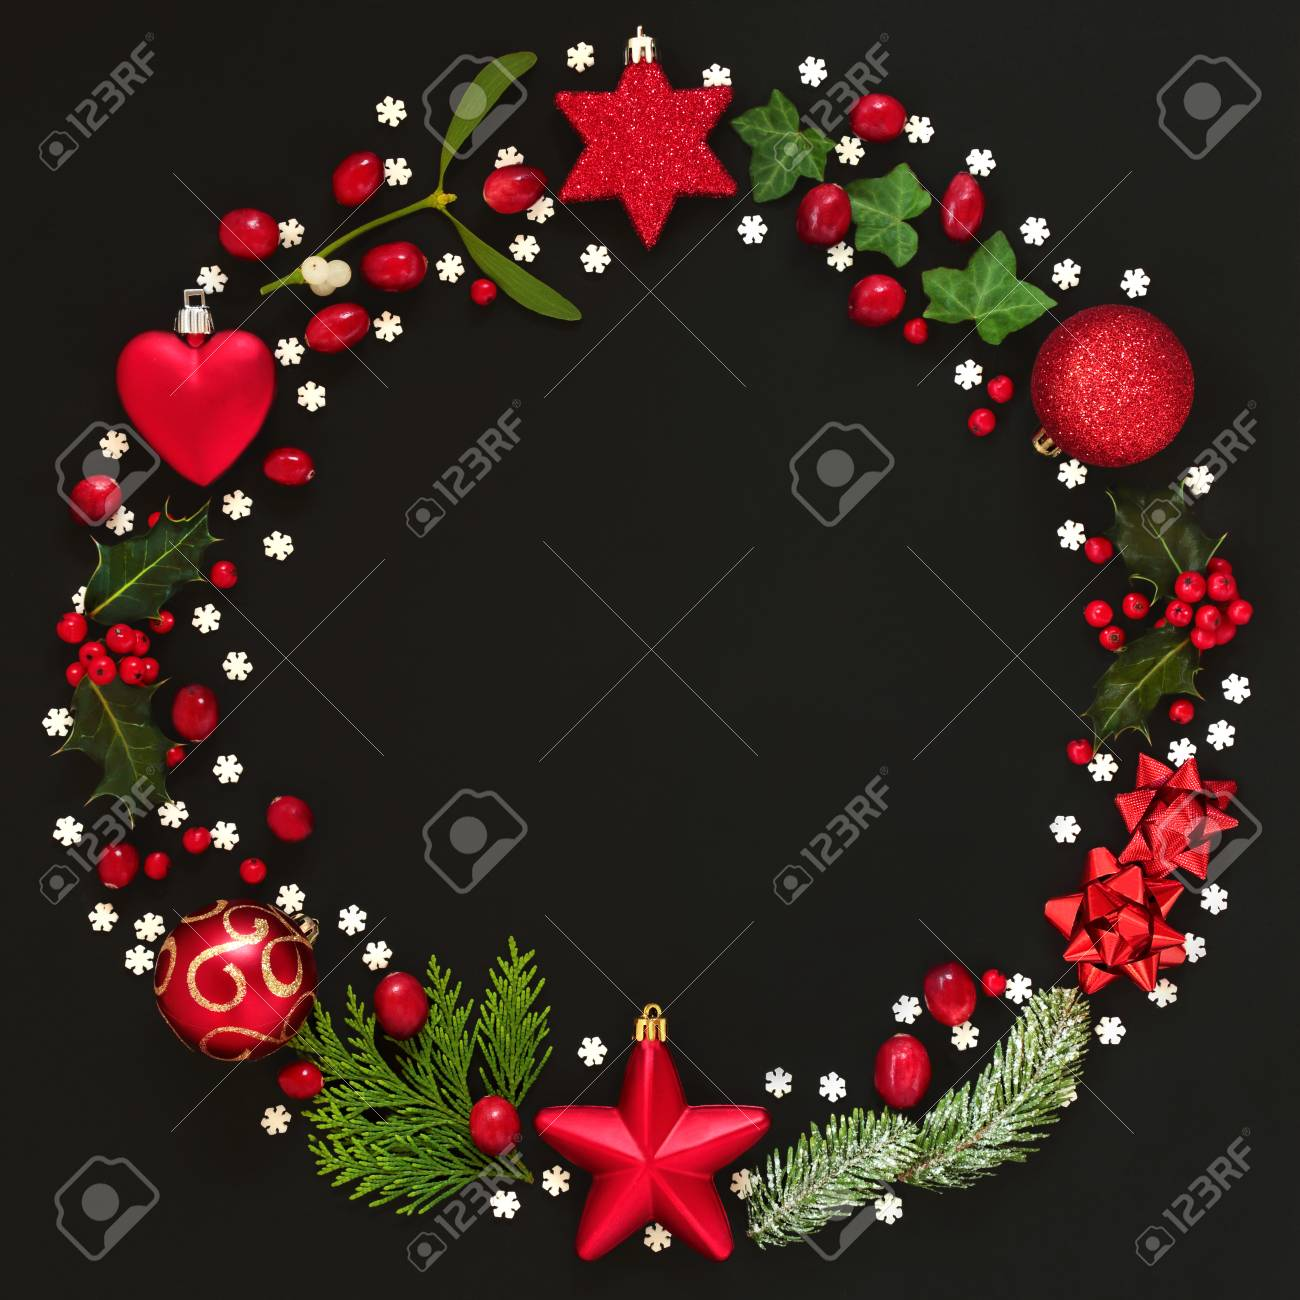 Abstract Christmas Wreath Garland With Winter Flora And Bauble